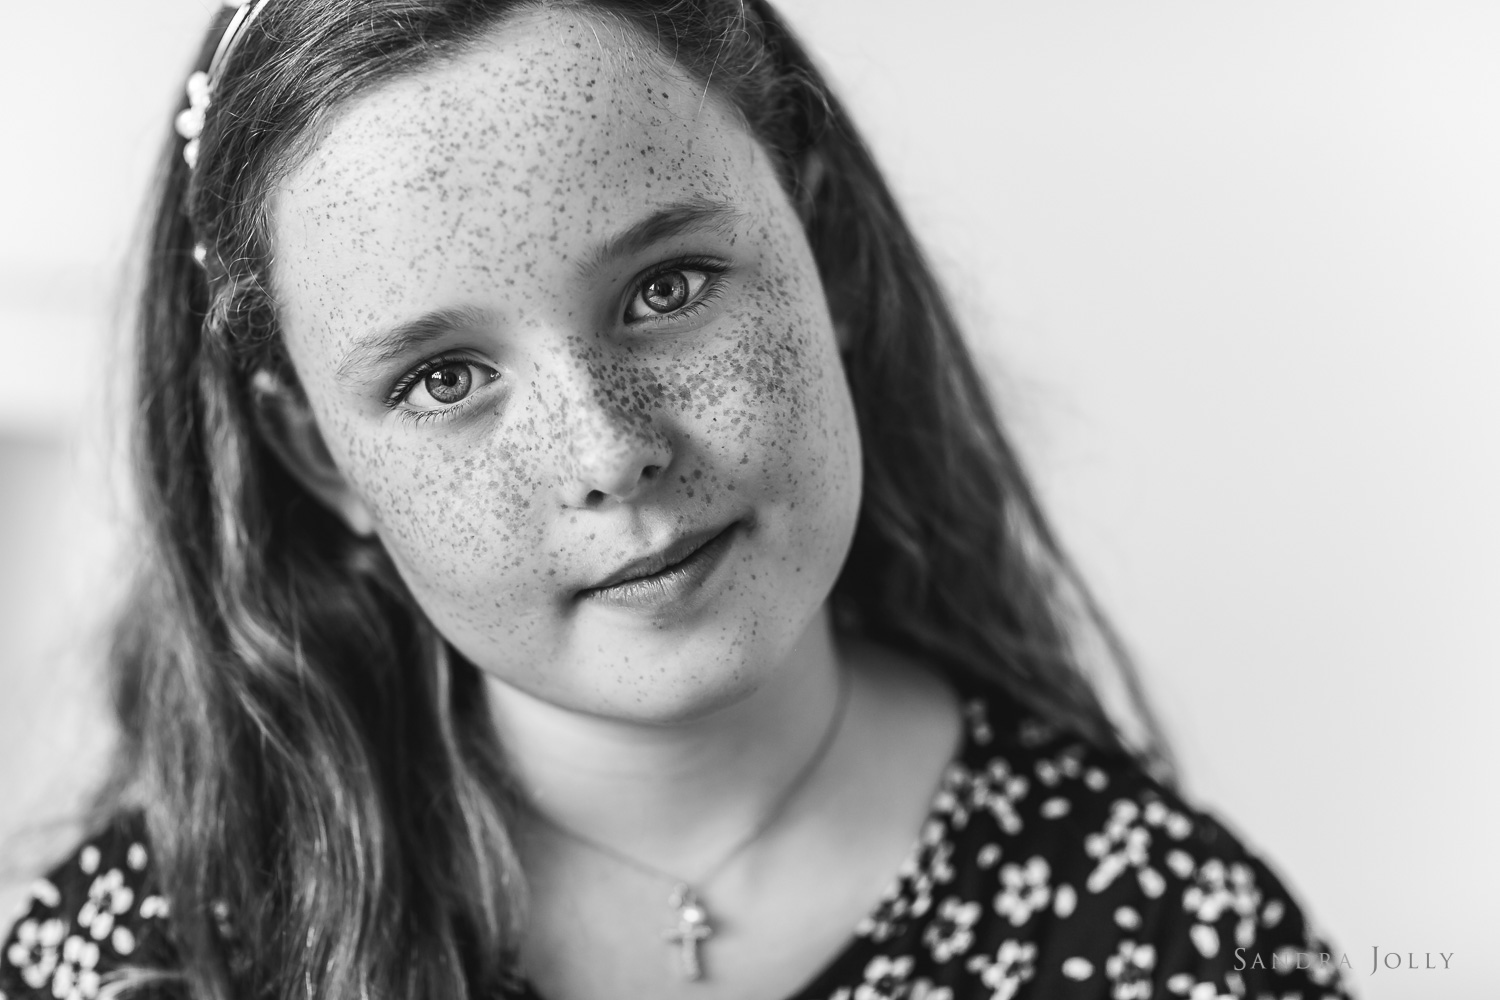 black-and-white-photo-of-a-girl-with-freckles-by-barnfotograf-sandra-jolly.jpg